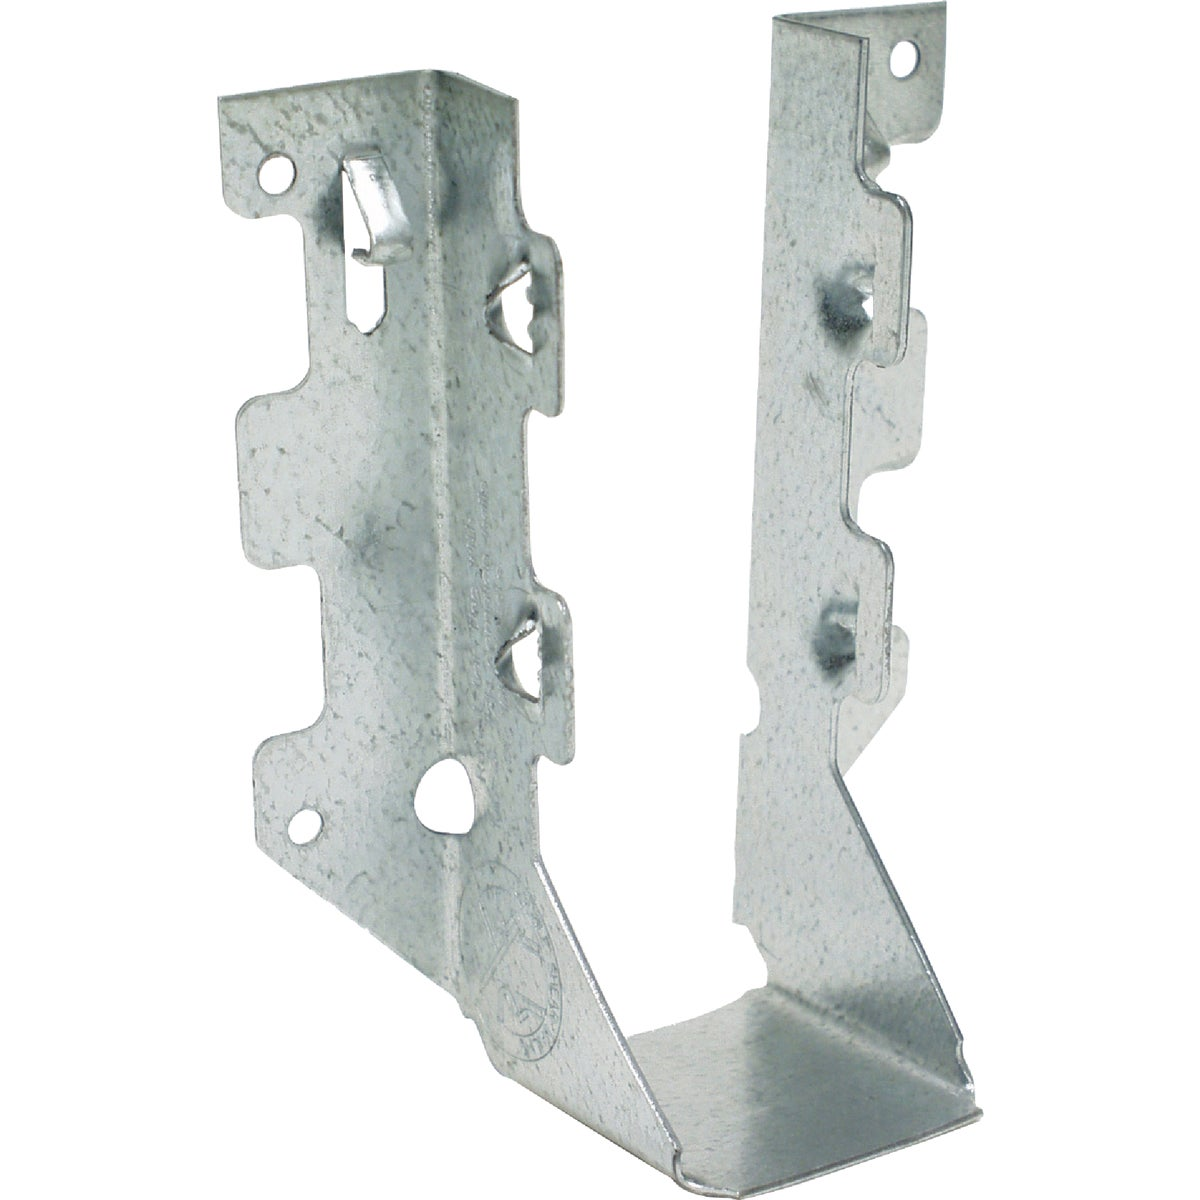 2X6 JOIST HANGER ZMX - LUS26Z by Simpson Strong Tie